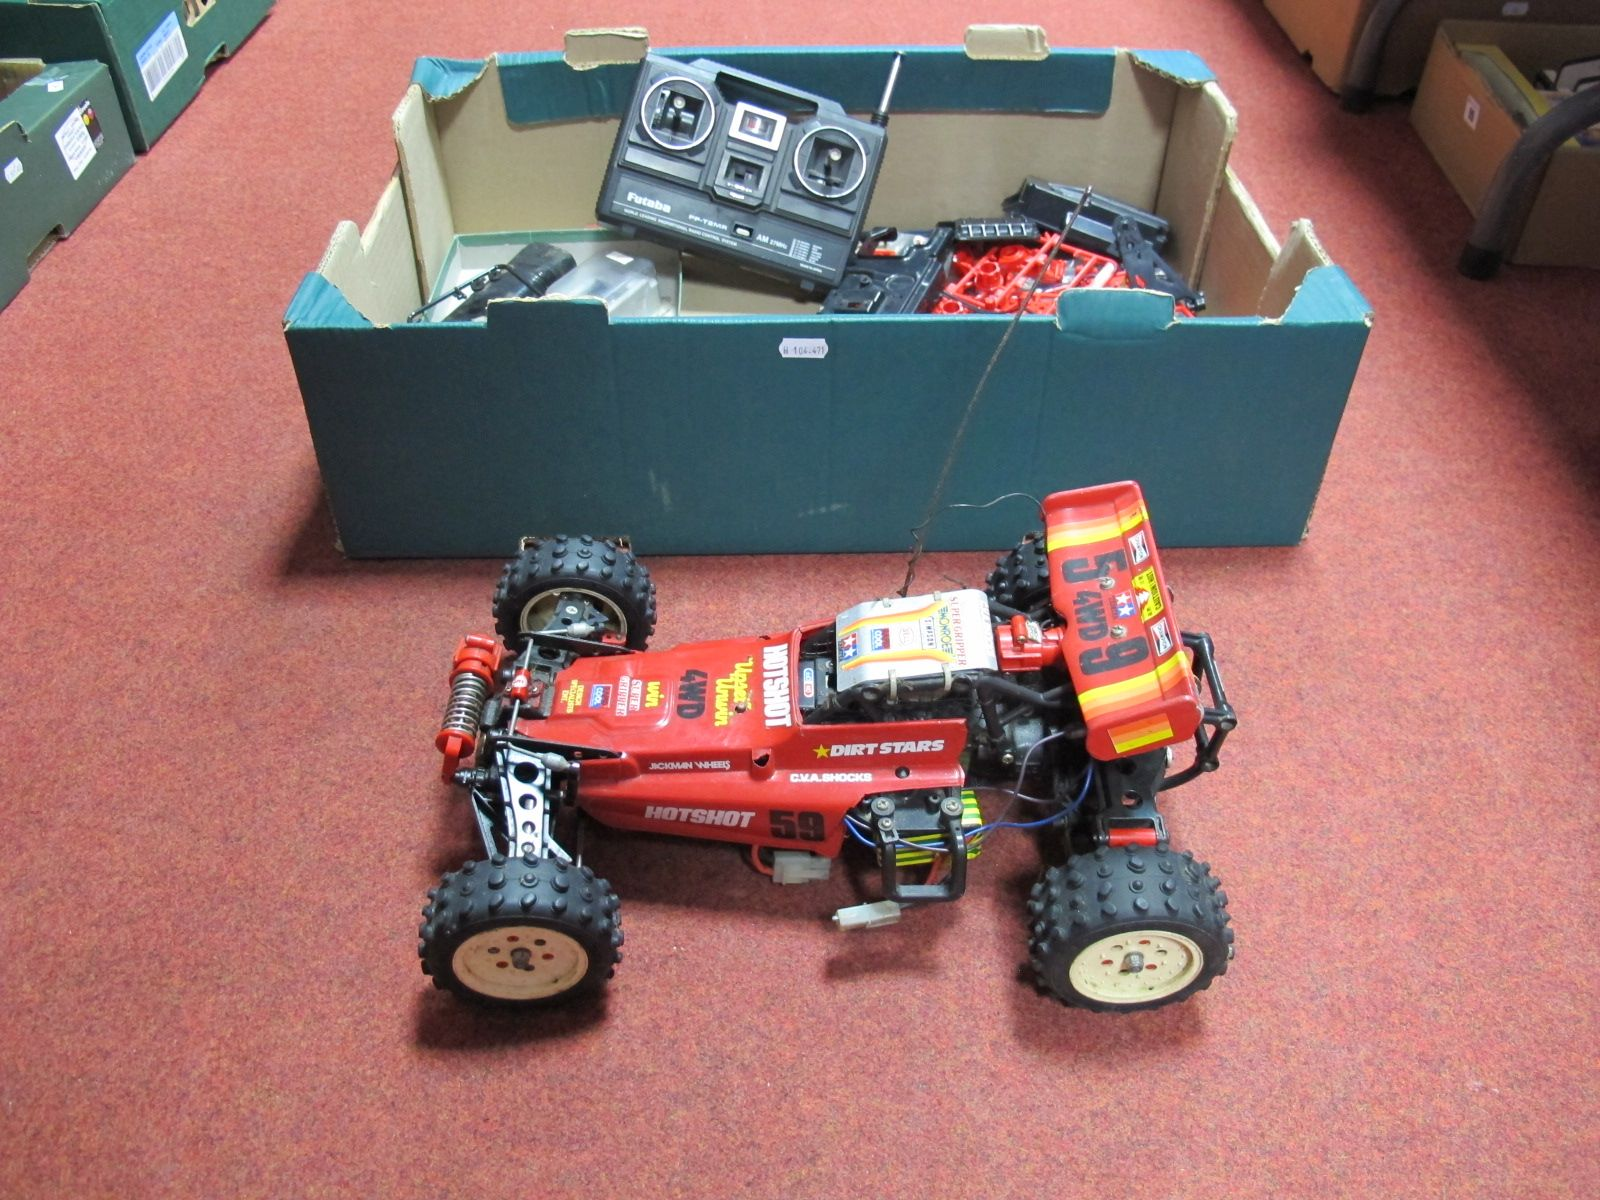 Lot 46 - A Tamiya Hotshot Radio Control Buggy, radio gear fitted, with Futaba transmitter, Acoms fast charger